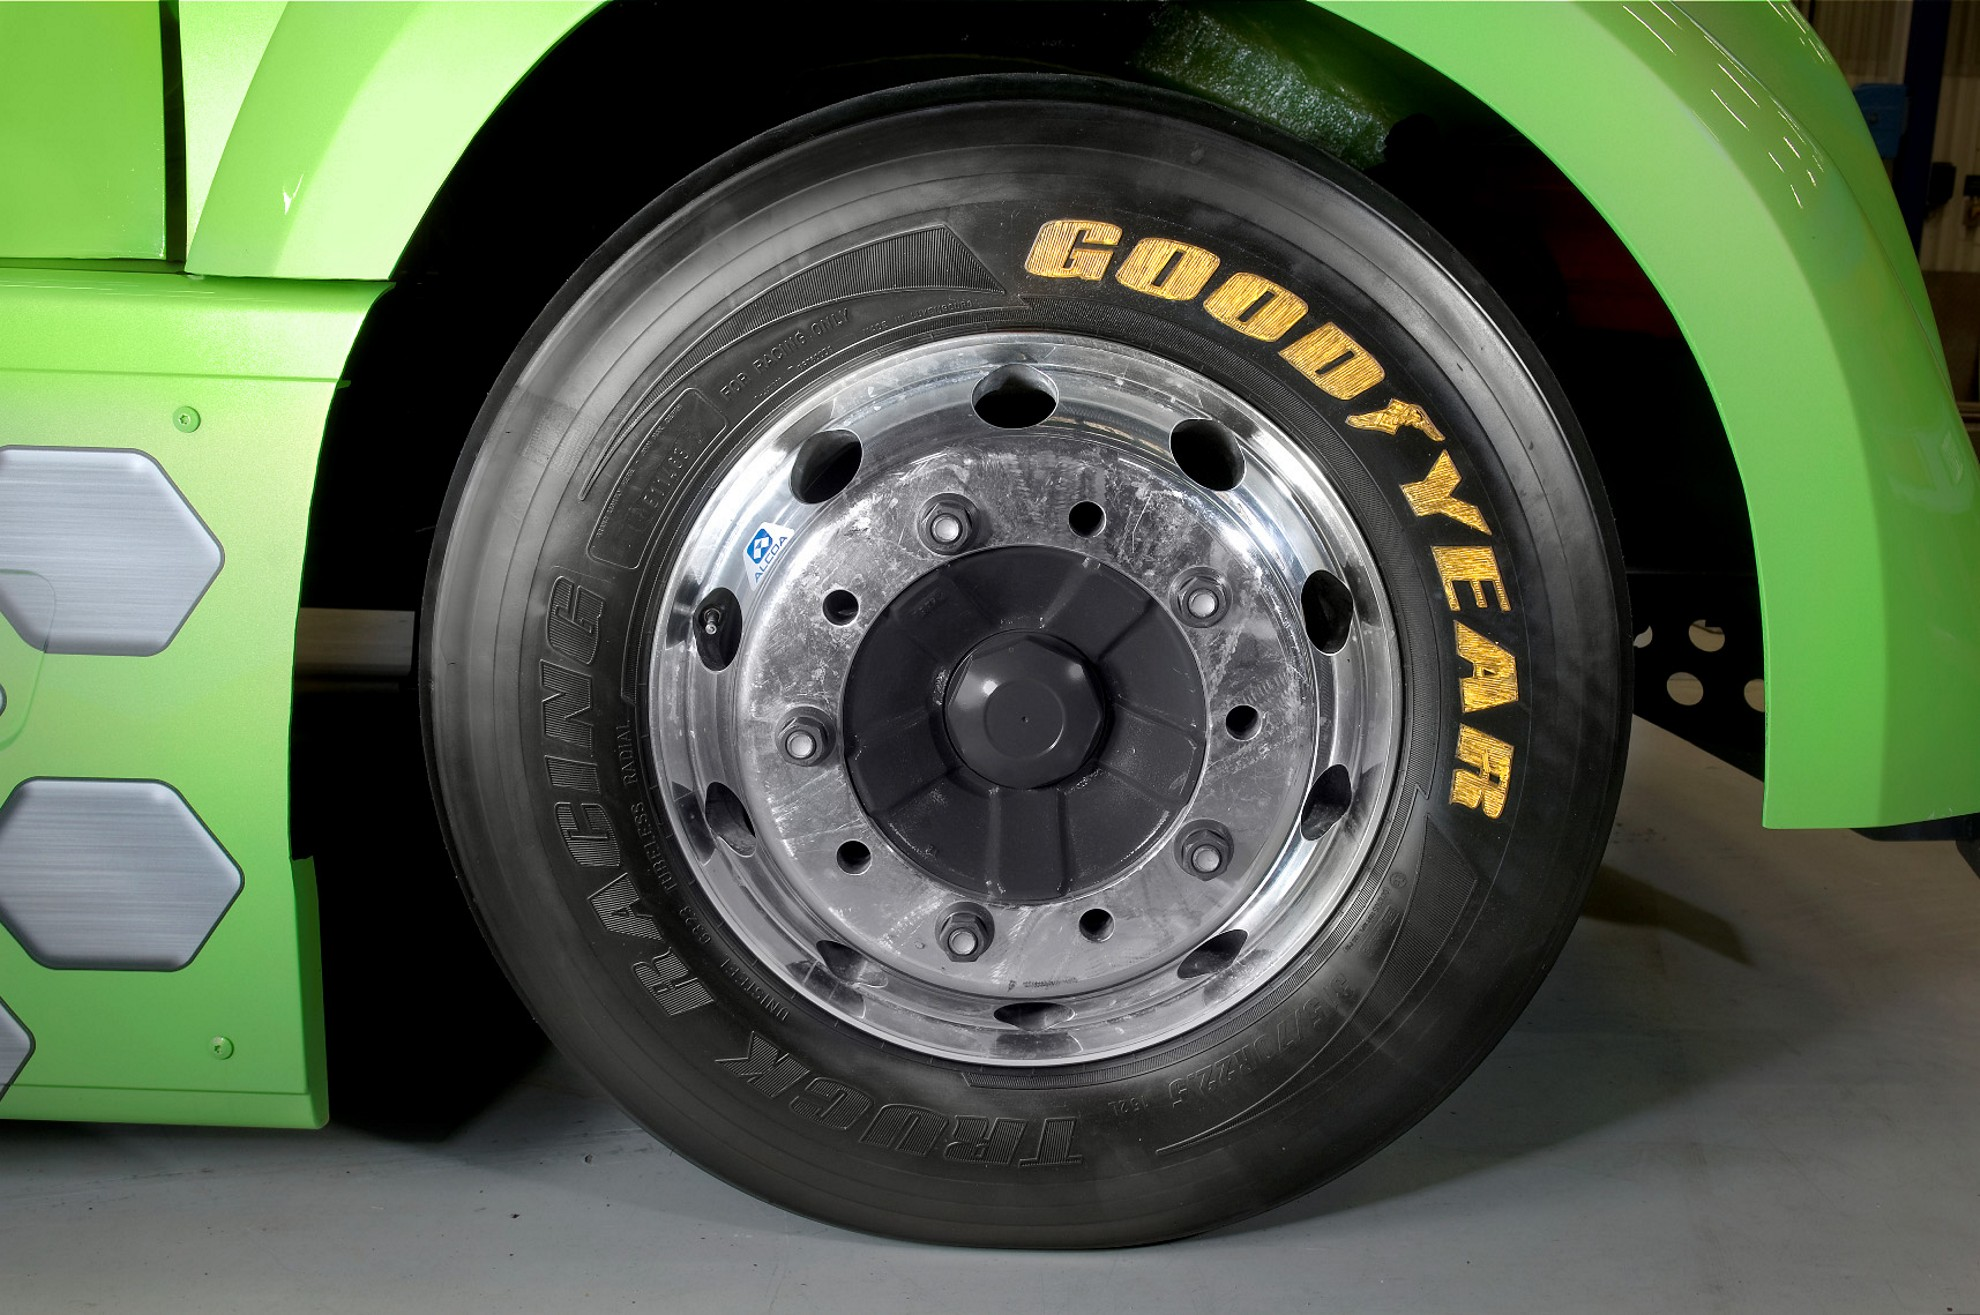 Goodyear Tyres Goodyear Tyres The Fastest Truck Tyres